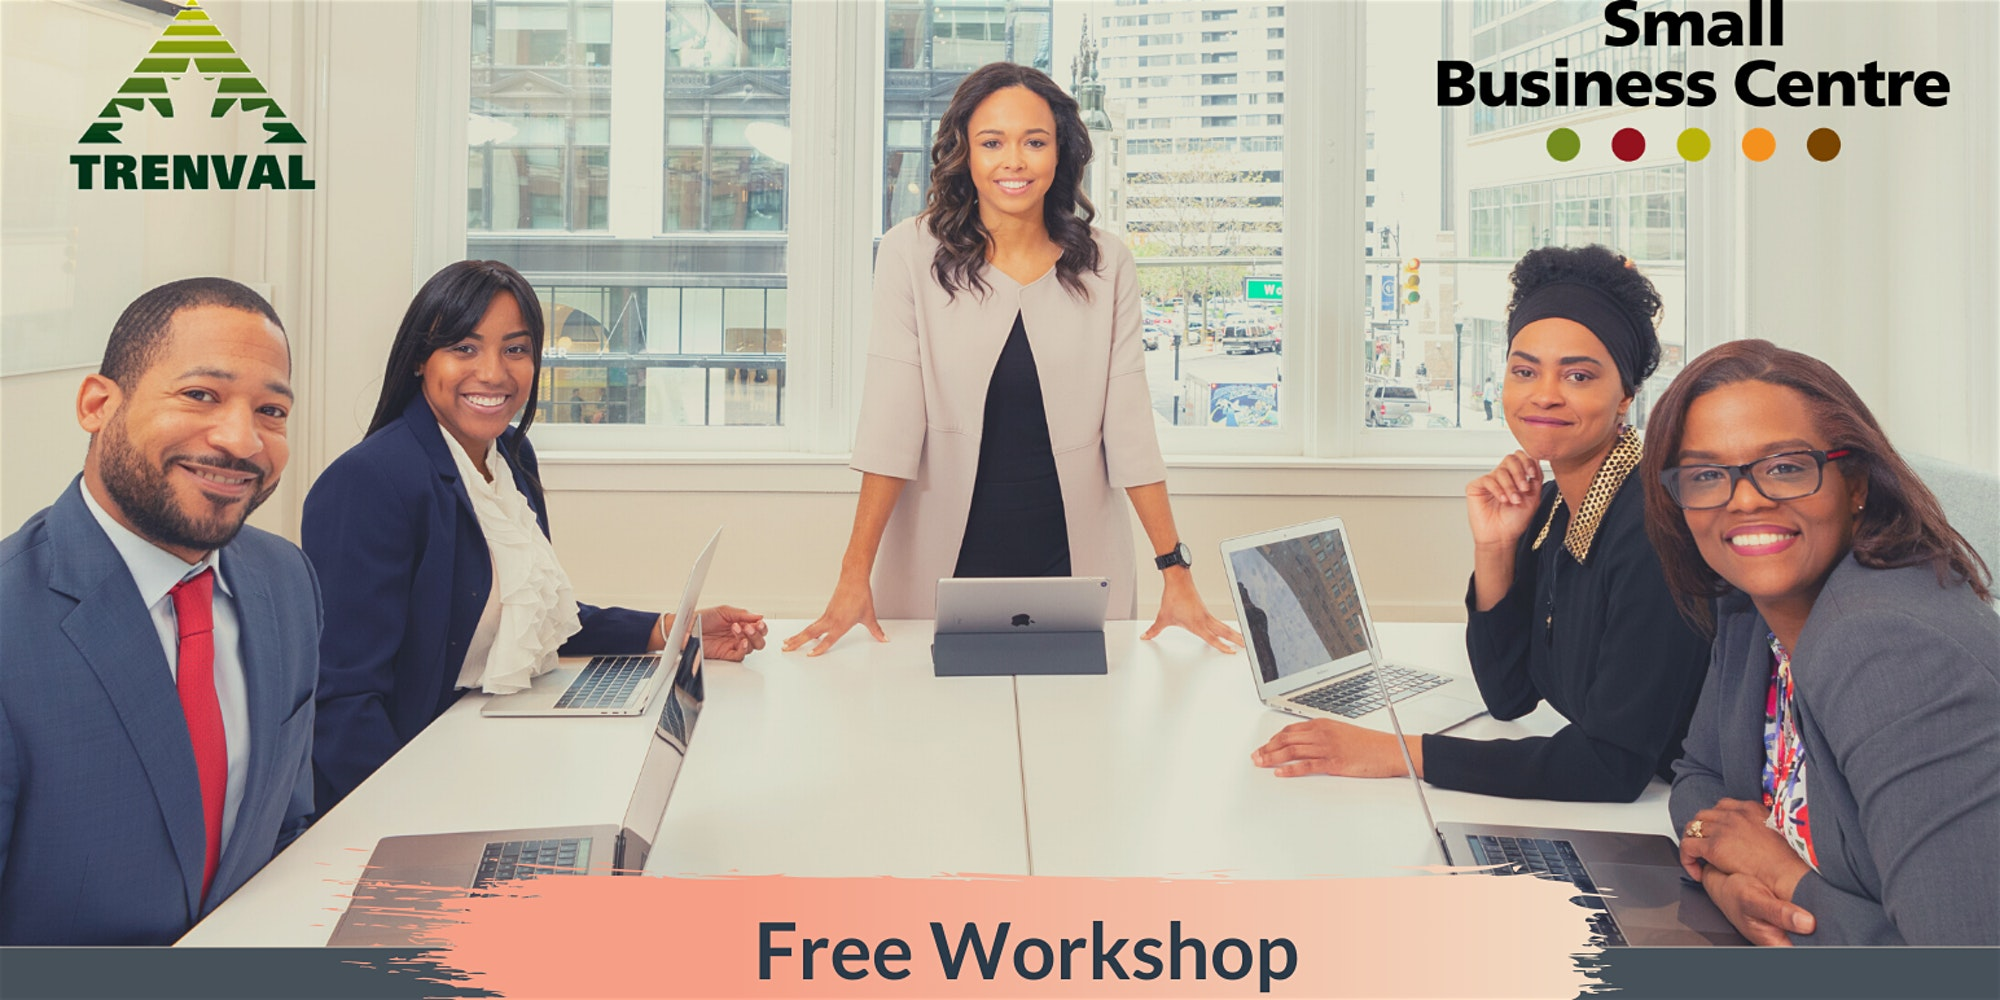 Five business people sitting around a board room table, with text: Free Workshop.